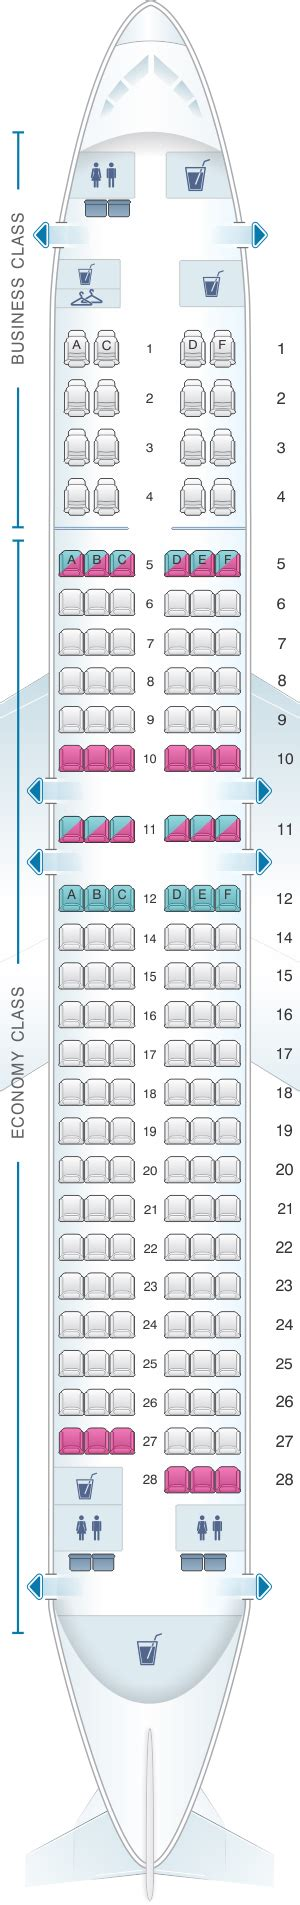 turkish airlines seating chart 777 - Calon